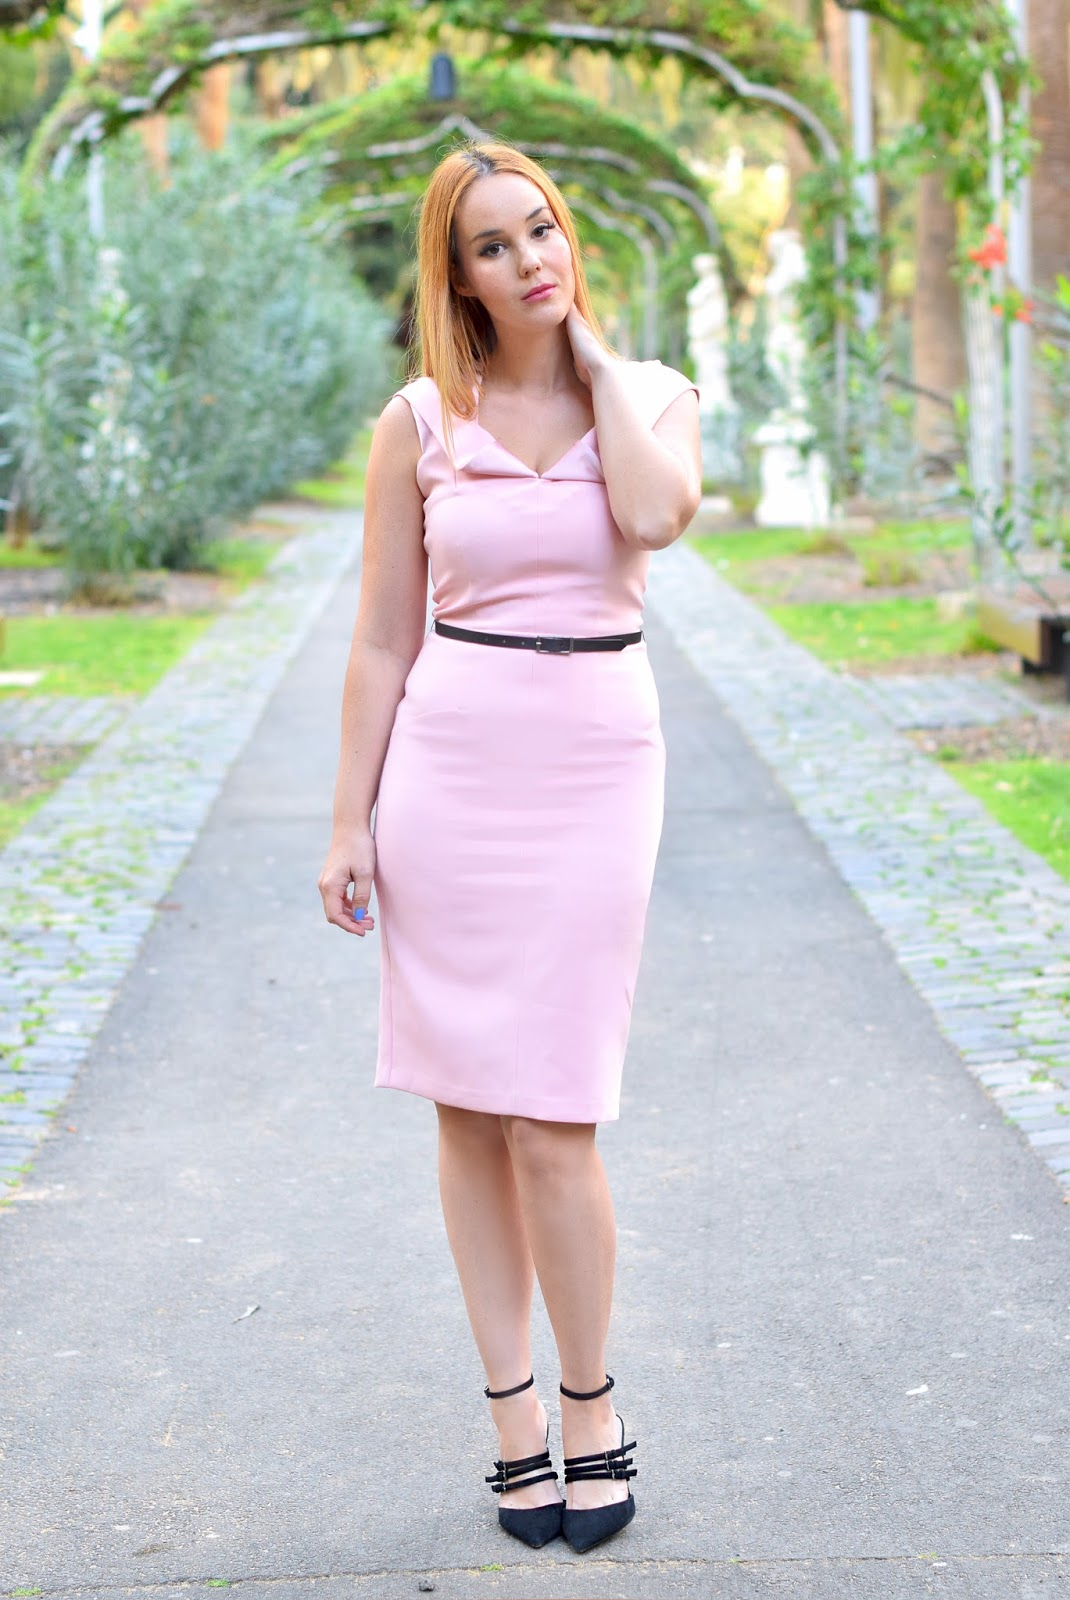 Nery hdez, hybrid, , blonde, pink, zara shoes